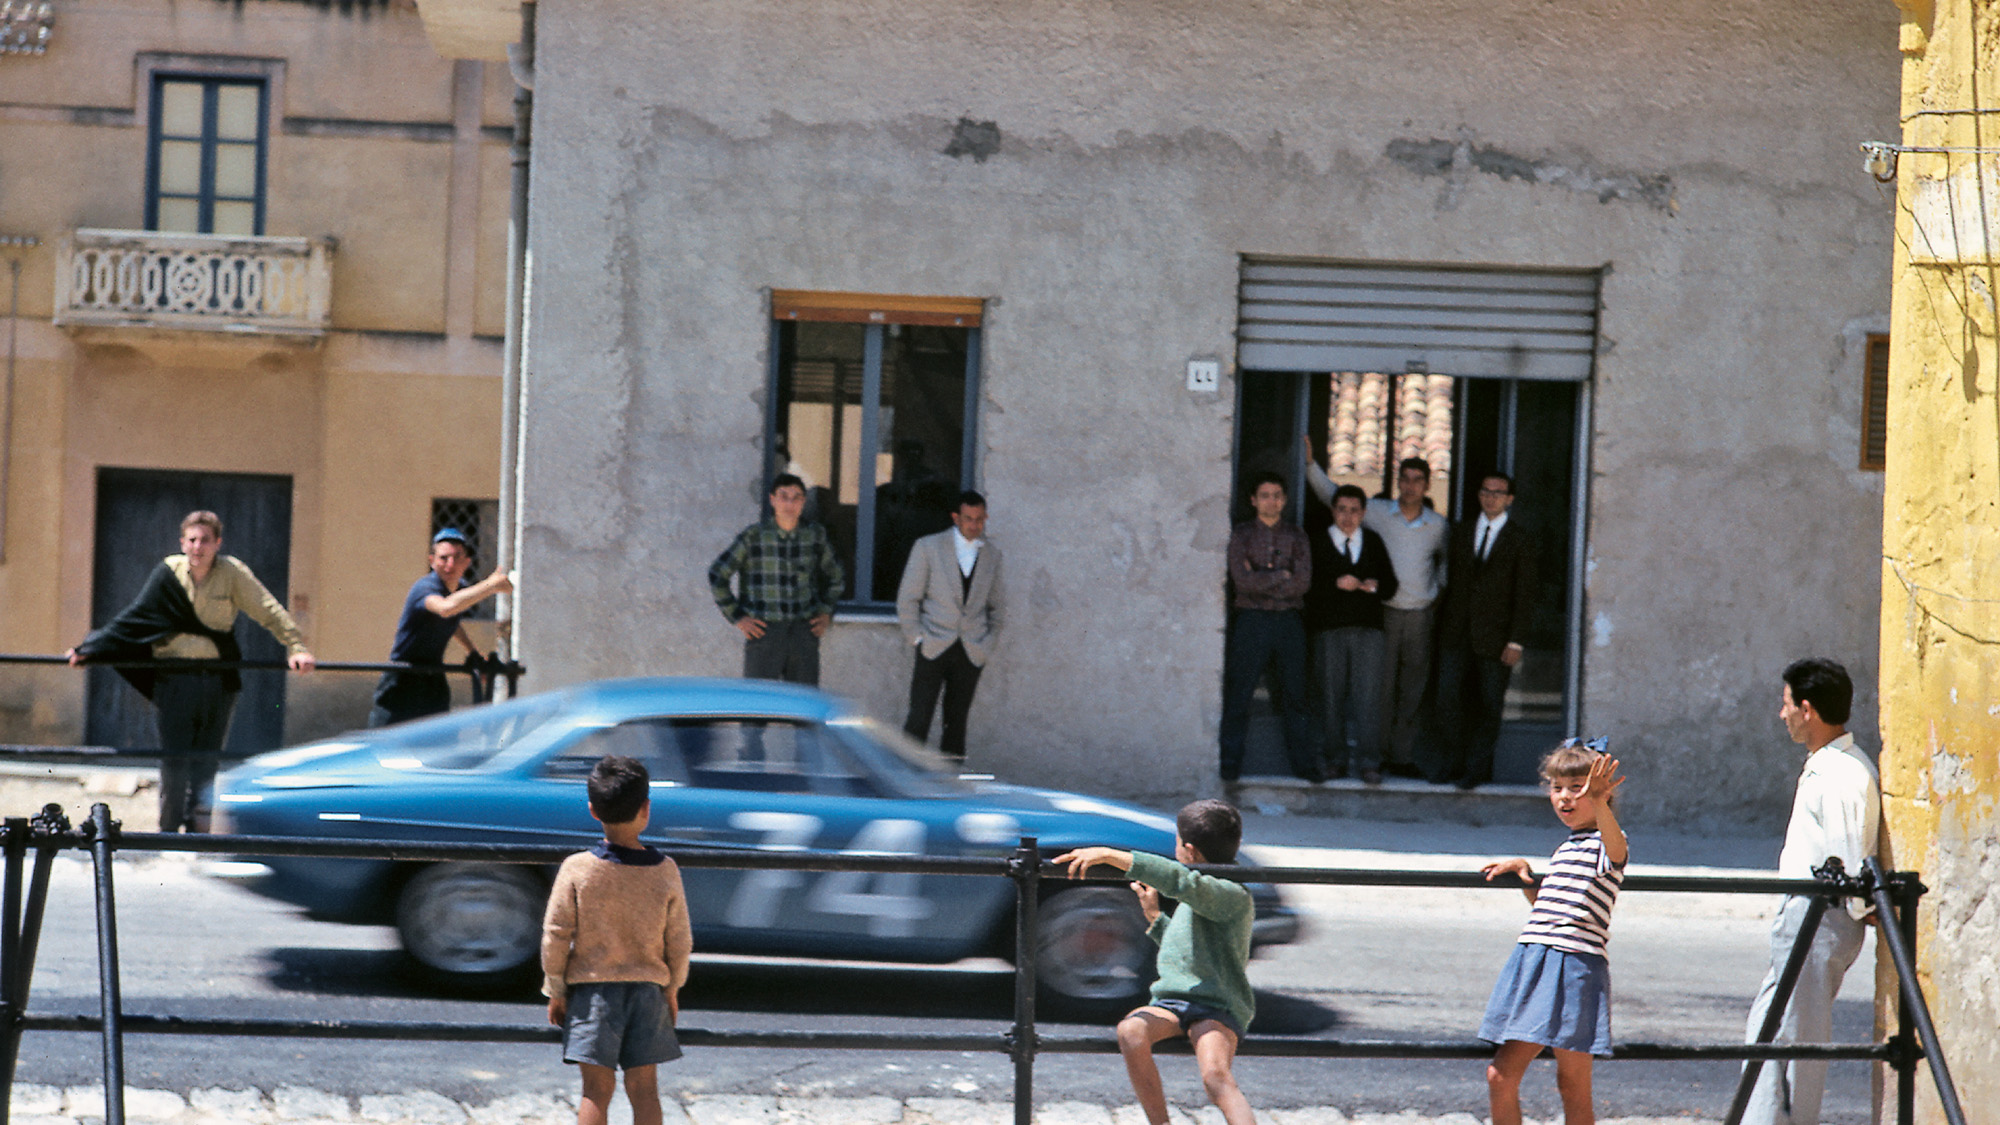 Crowds watch the Alpine A110 of Jean-Pierre Hanrioud and Jean-Francois Piot on the 1966 Targa Florio